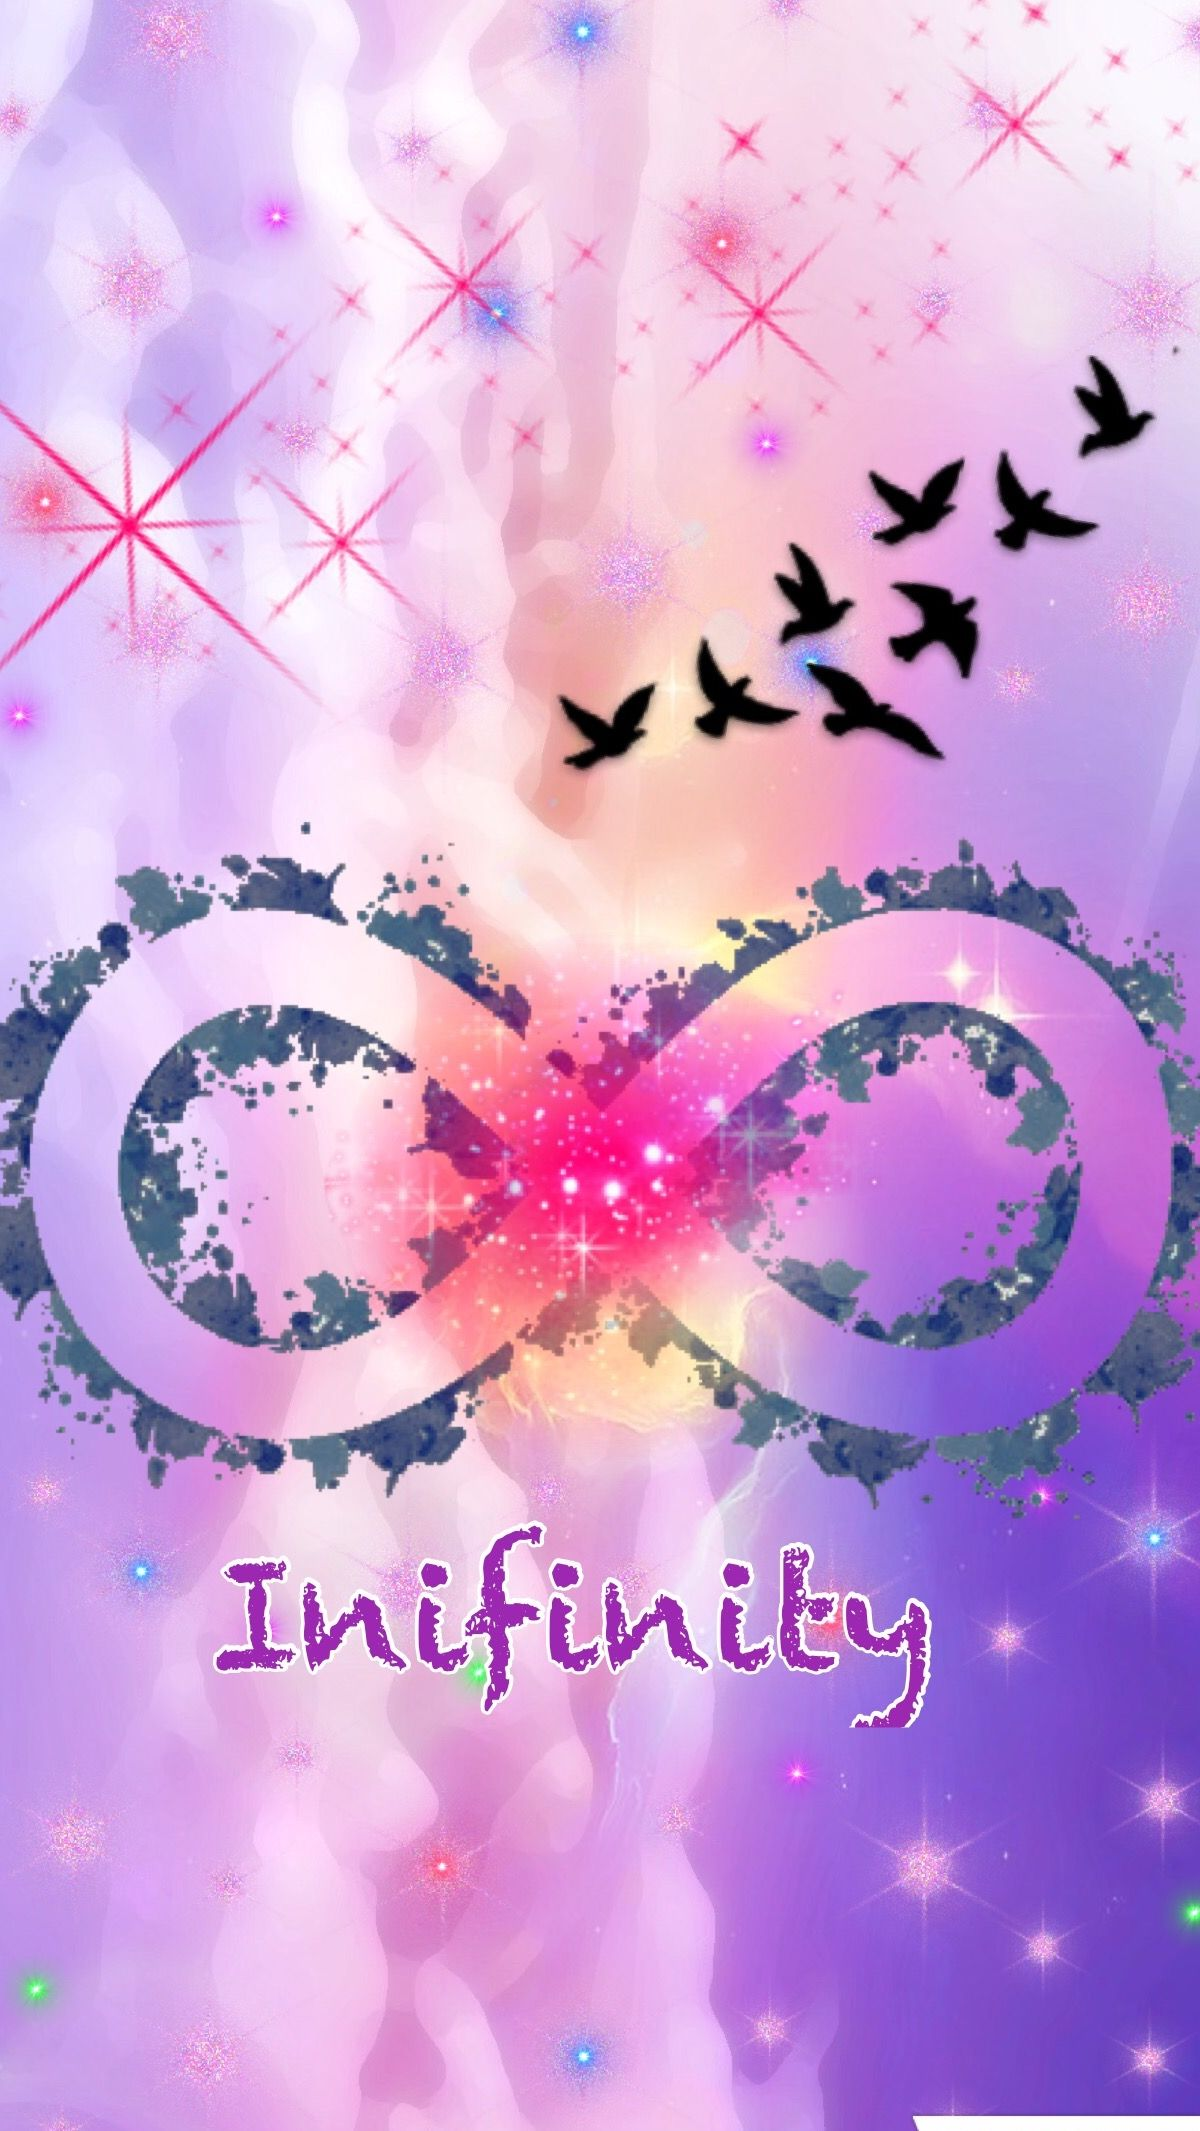 Infinity Wallpaper Space Nature Wallpapers in jpg format for free